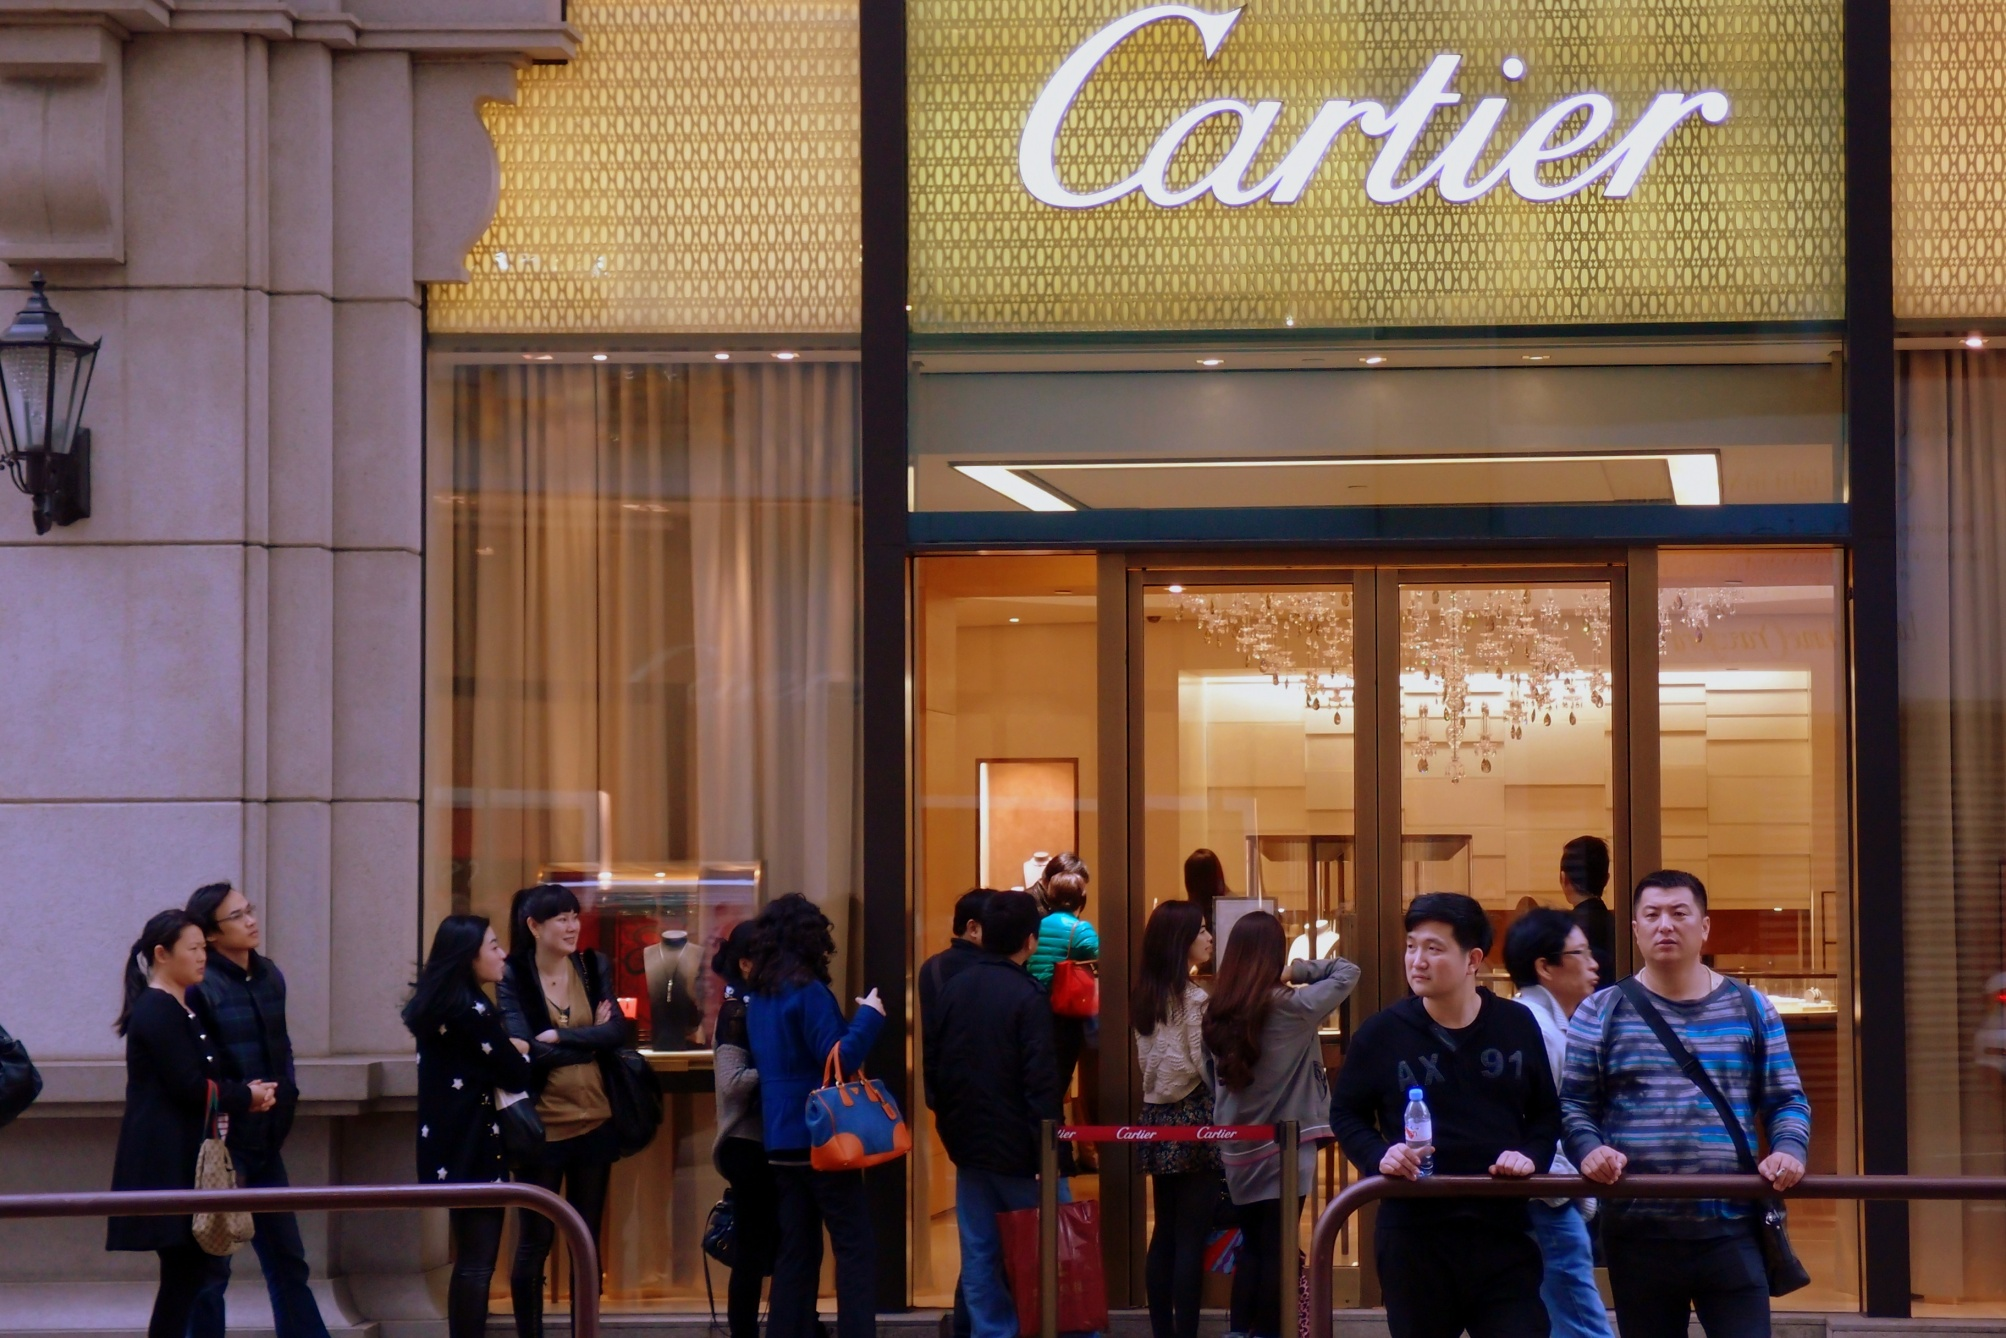 You are not mistaken, this is a queue outside Cartier